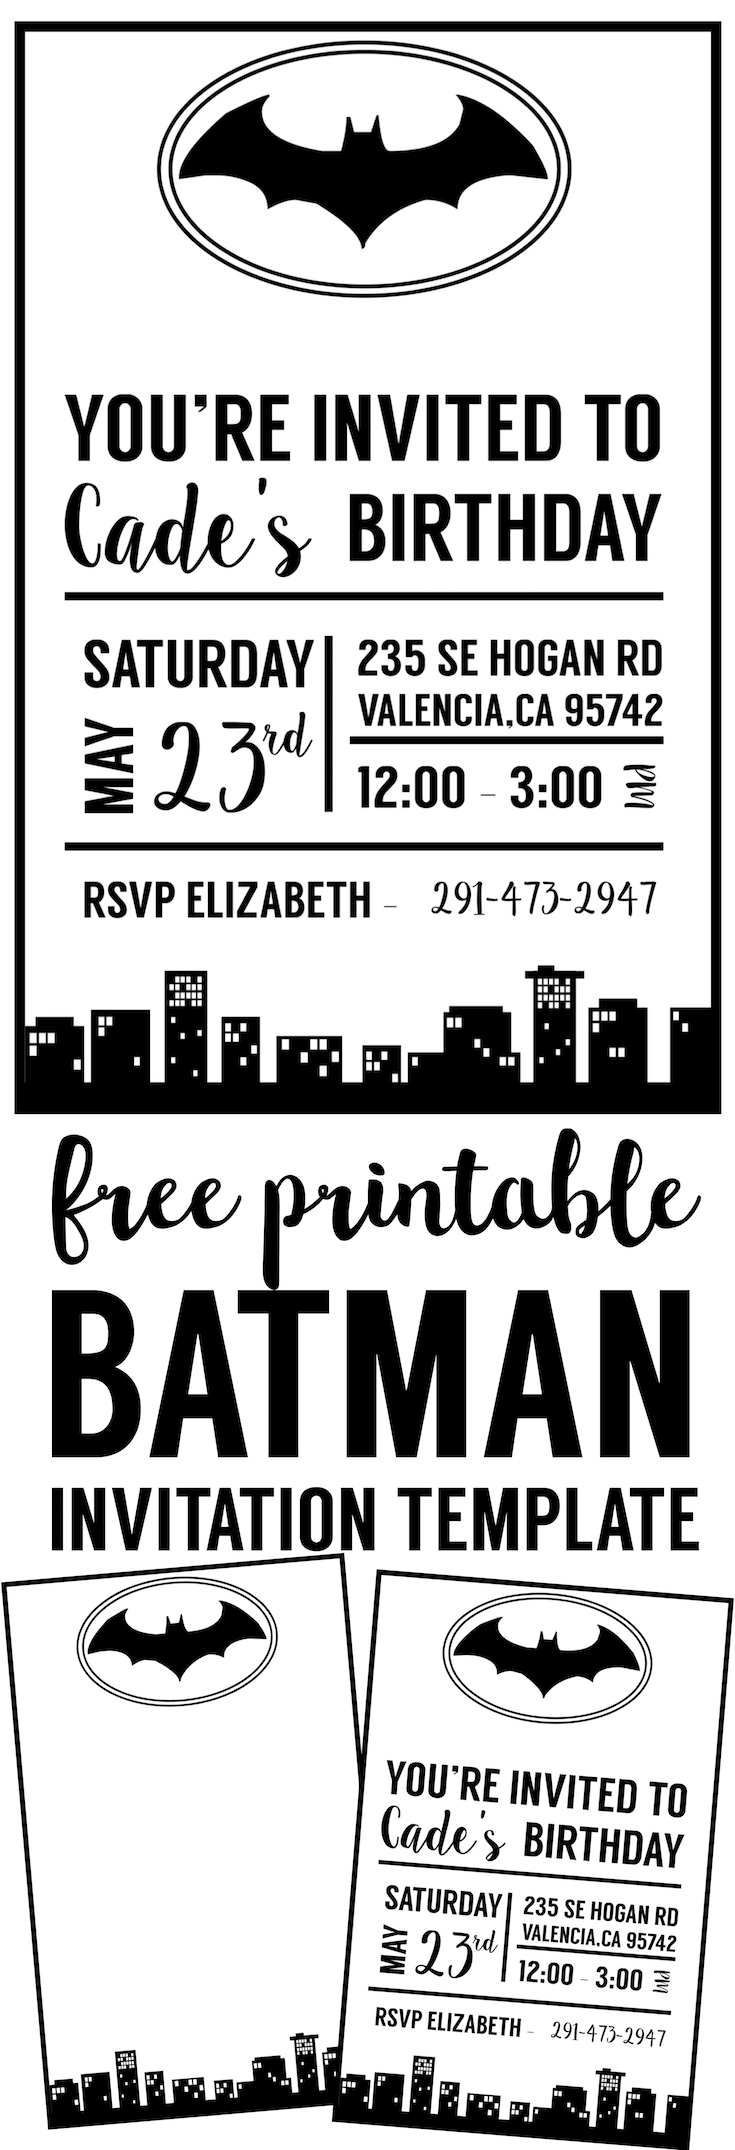 Free Batman Invitation Template Printable For A Birthday Party Halloween Or Baby